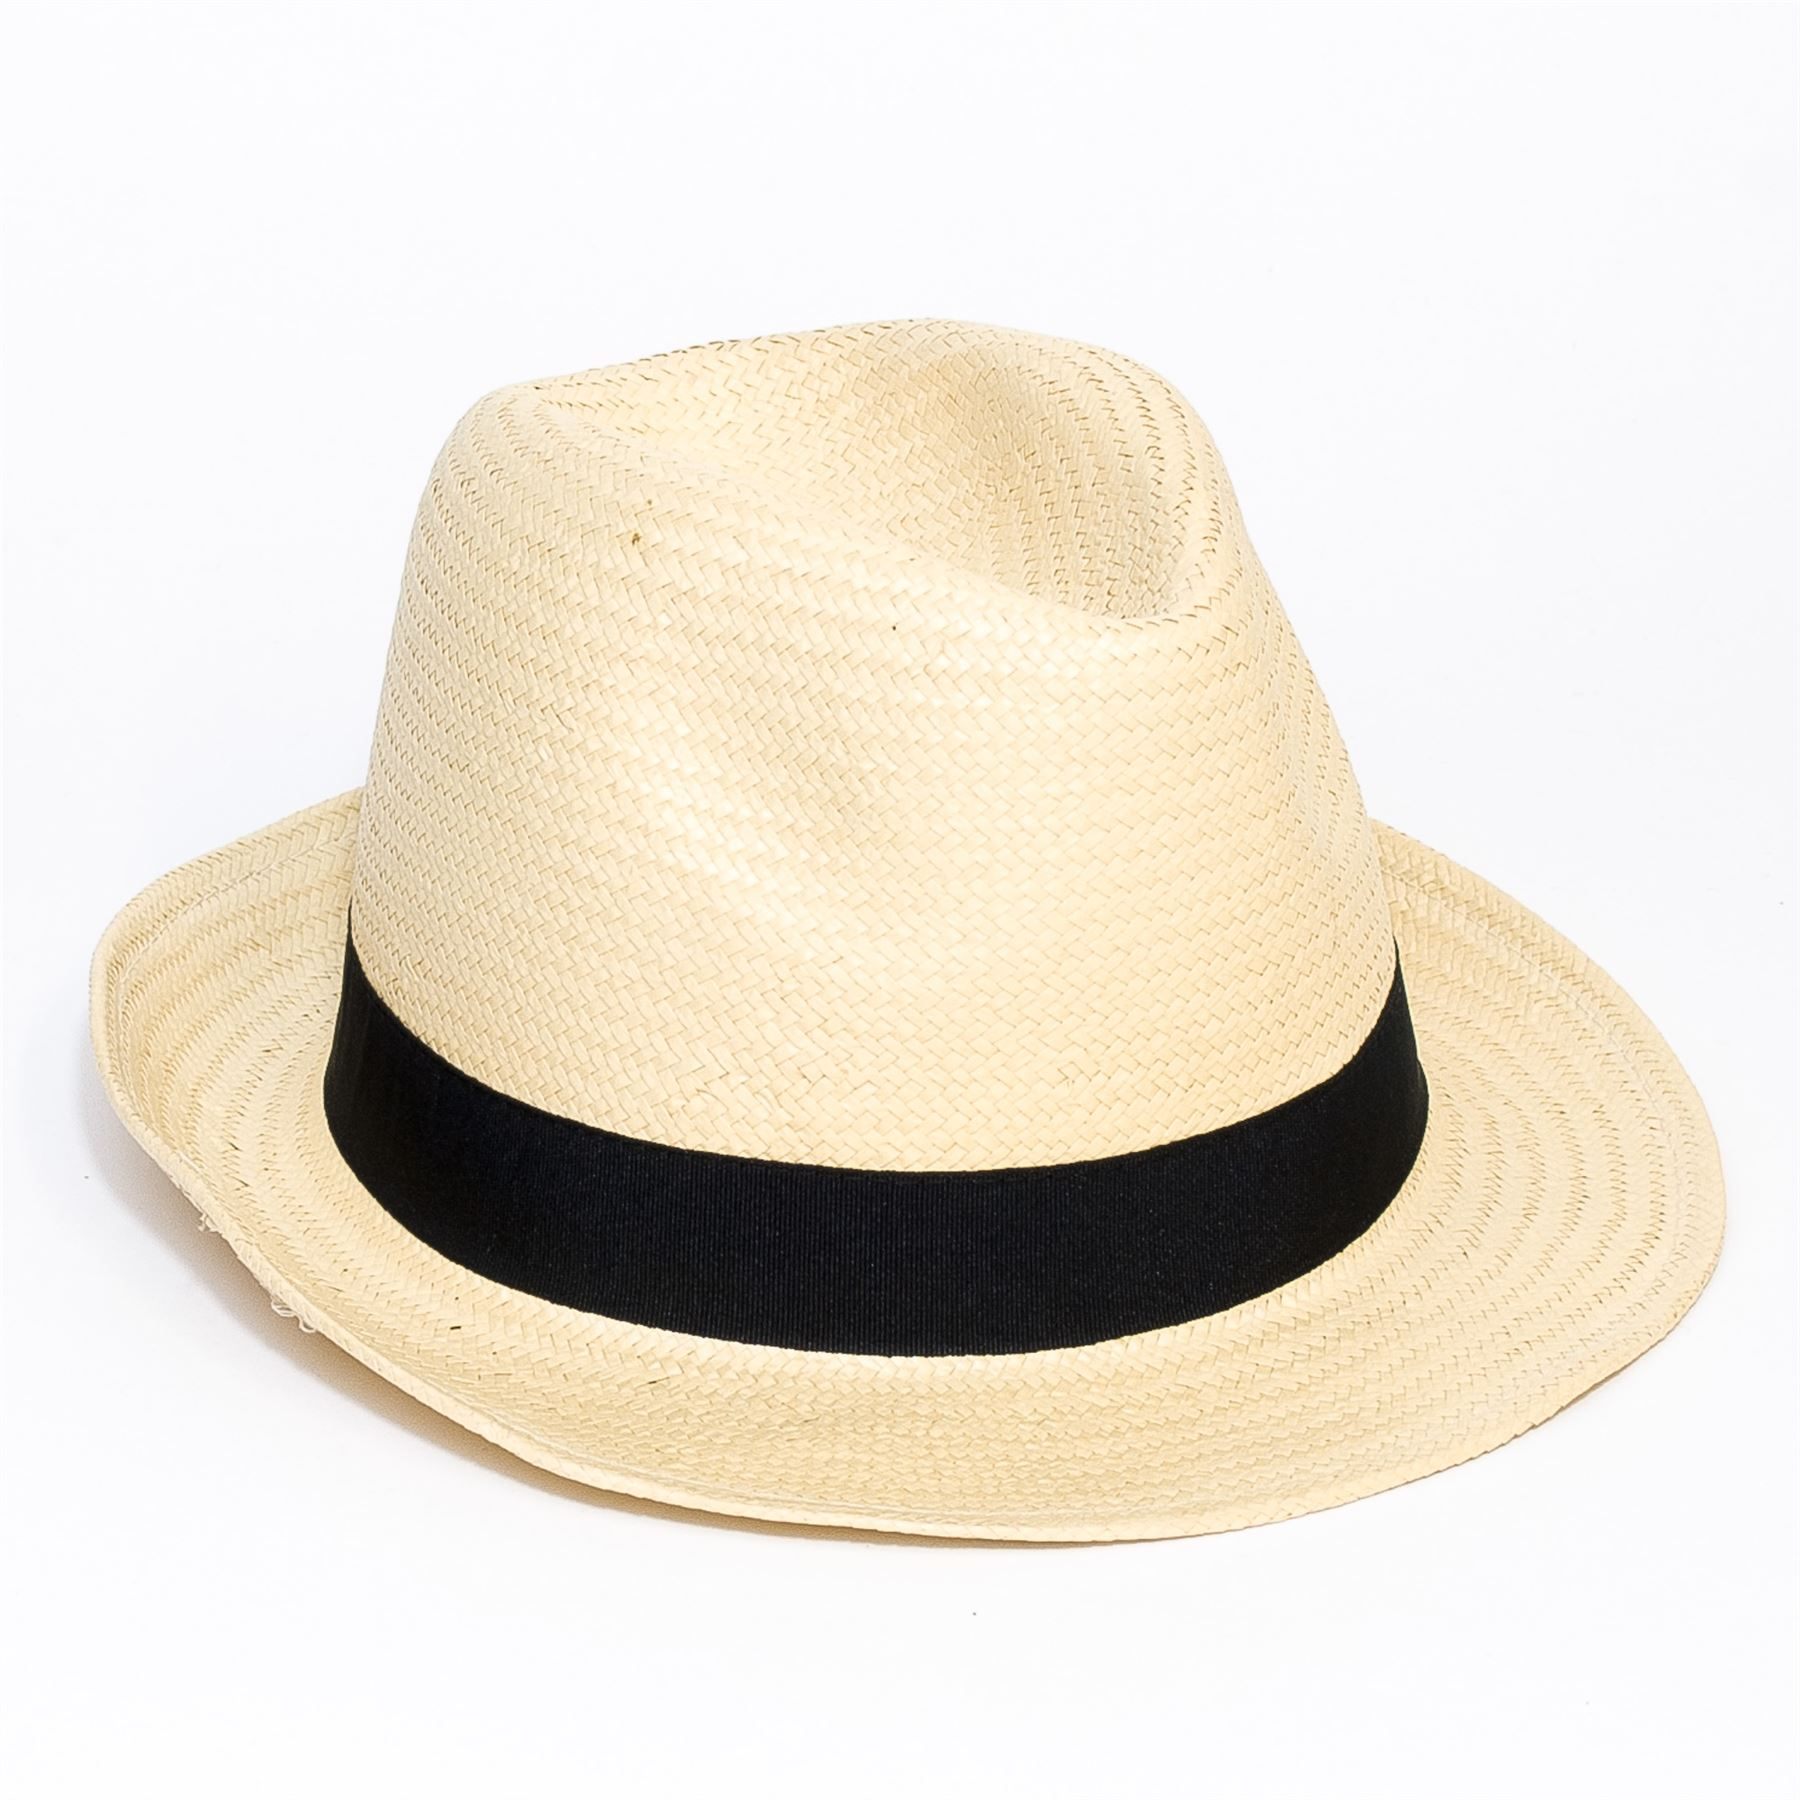 Woven-Straw-Style-Beige-Trilby-Hat thumbnail 4